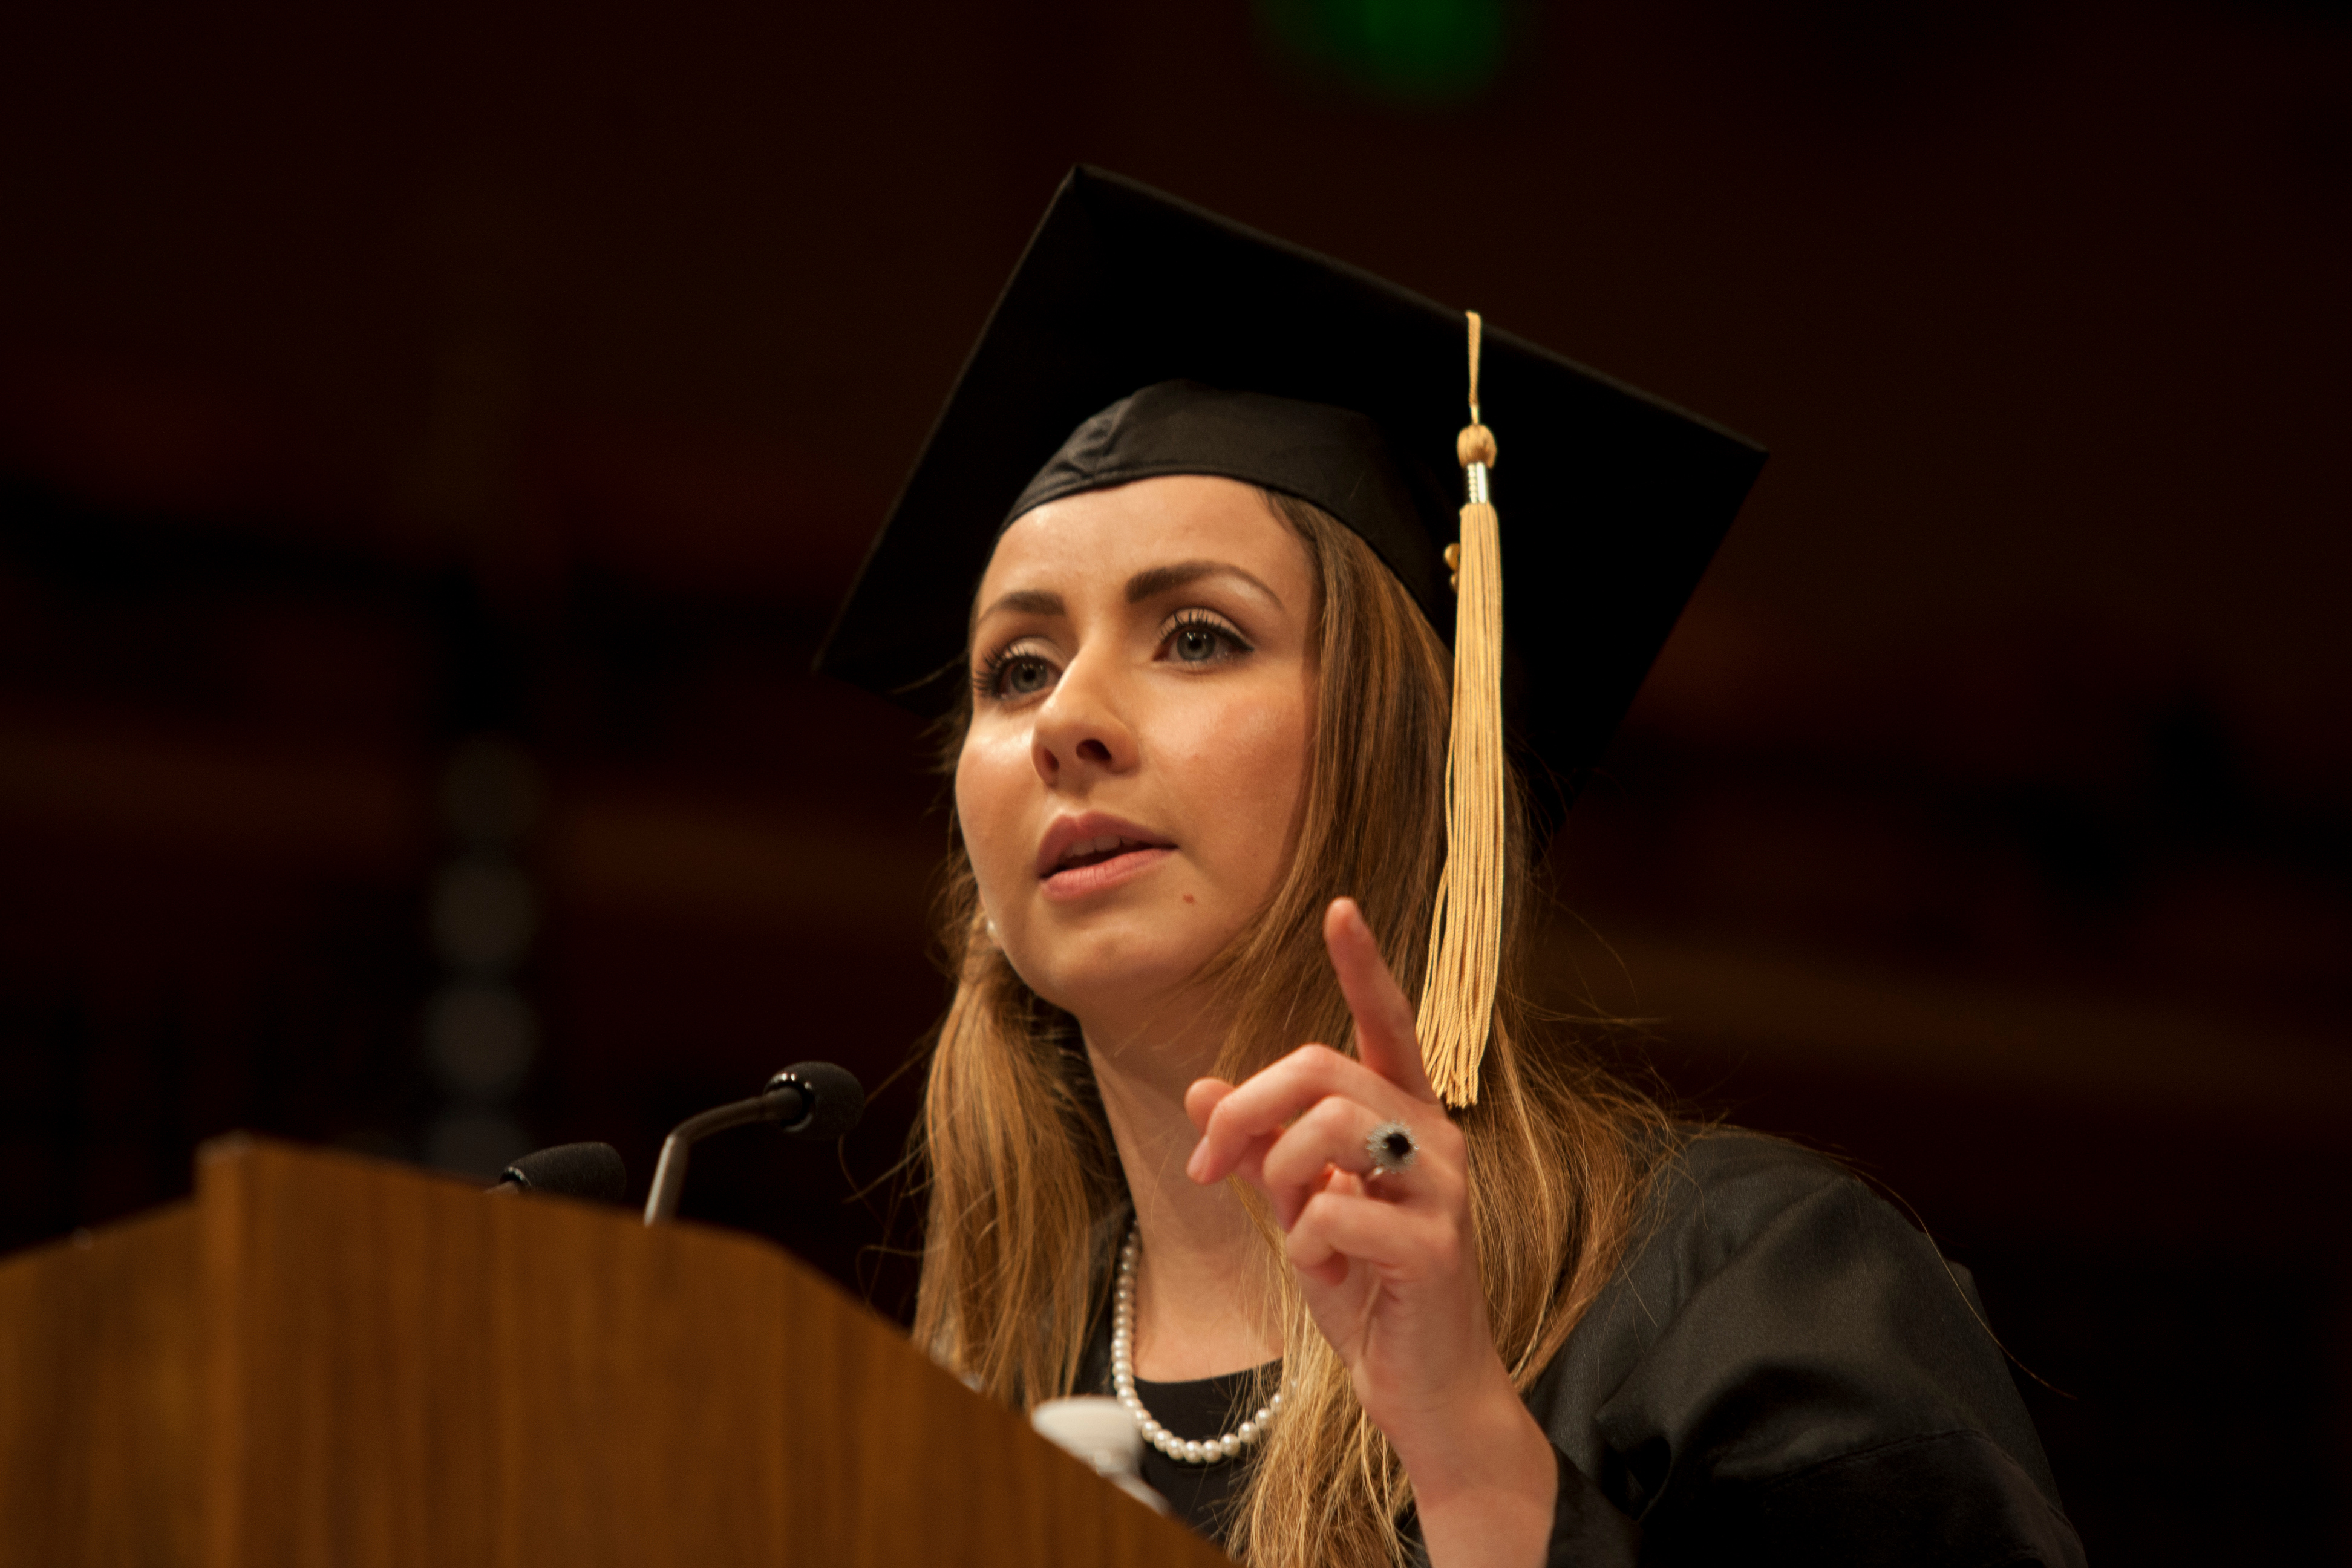 Dental student Maria Ajlouny delivers the student address at the School of Dentistry's commencement.